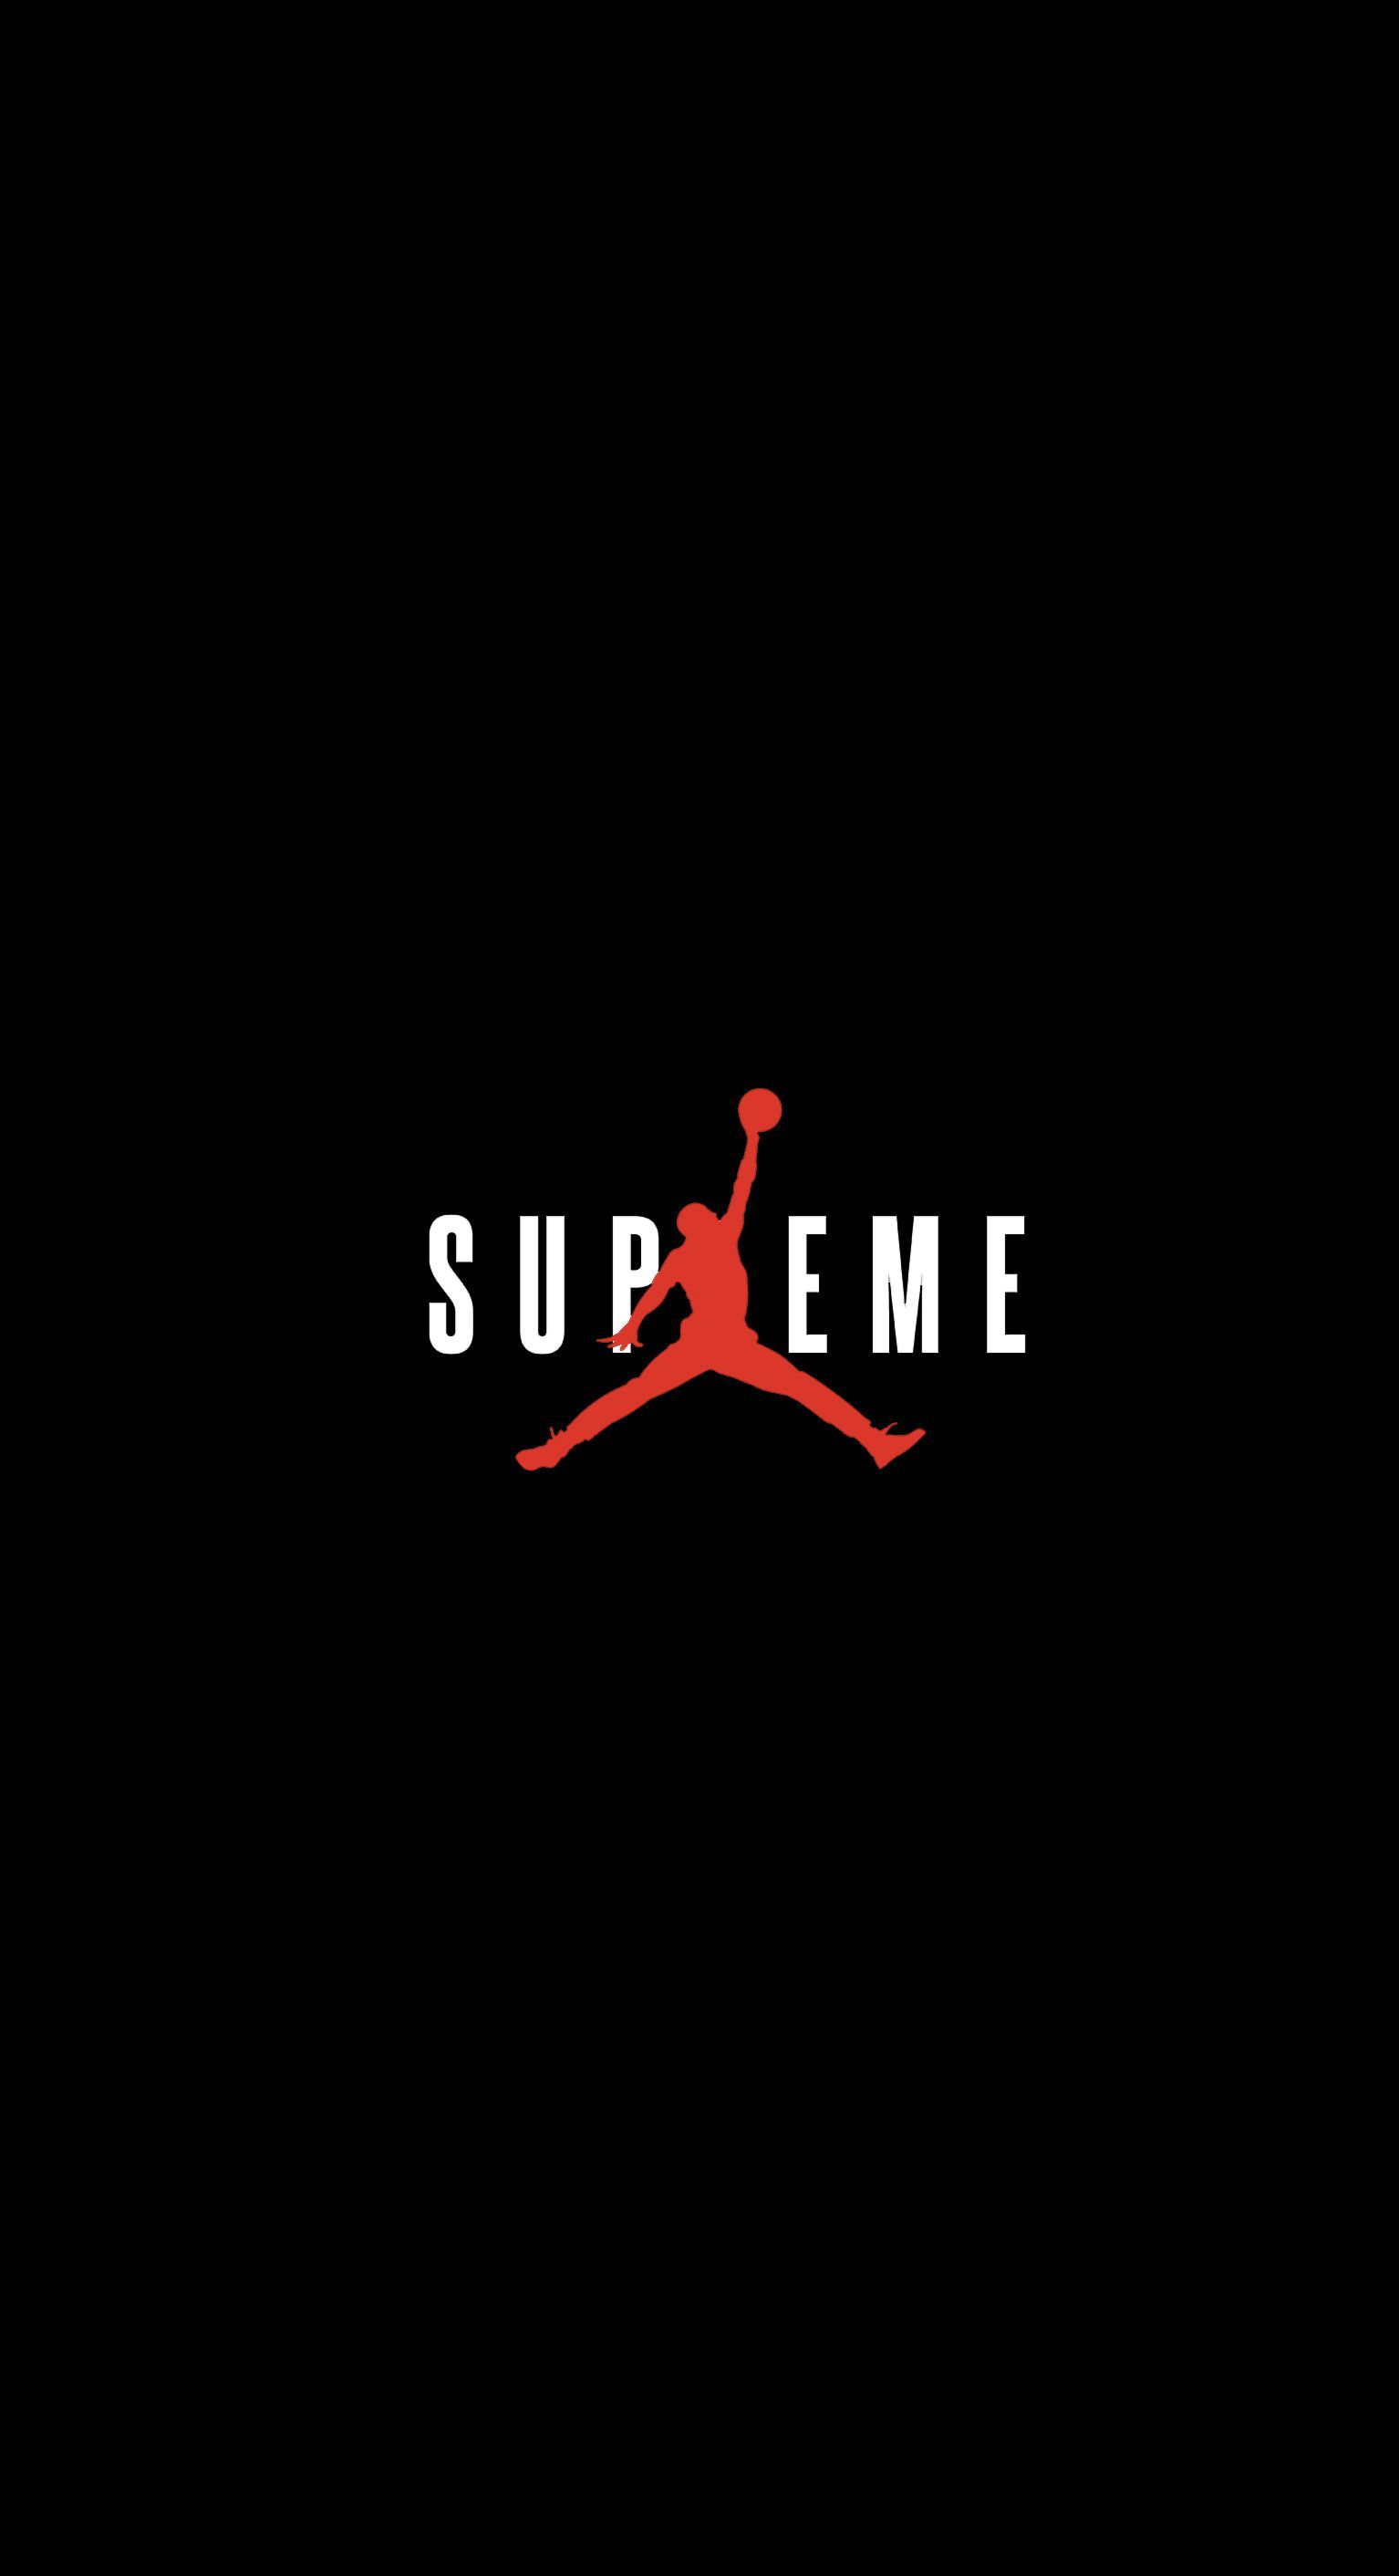 airjordans on in 2019 | some good stuff | hypebeast wallpaper